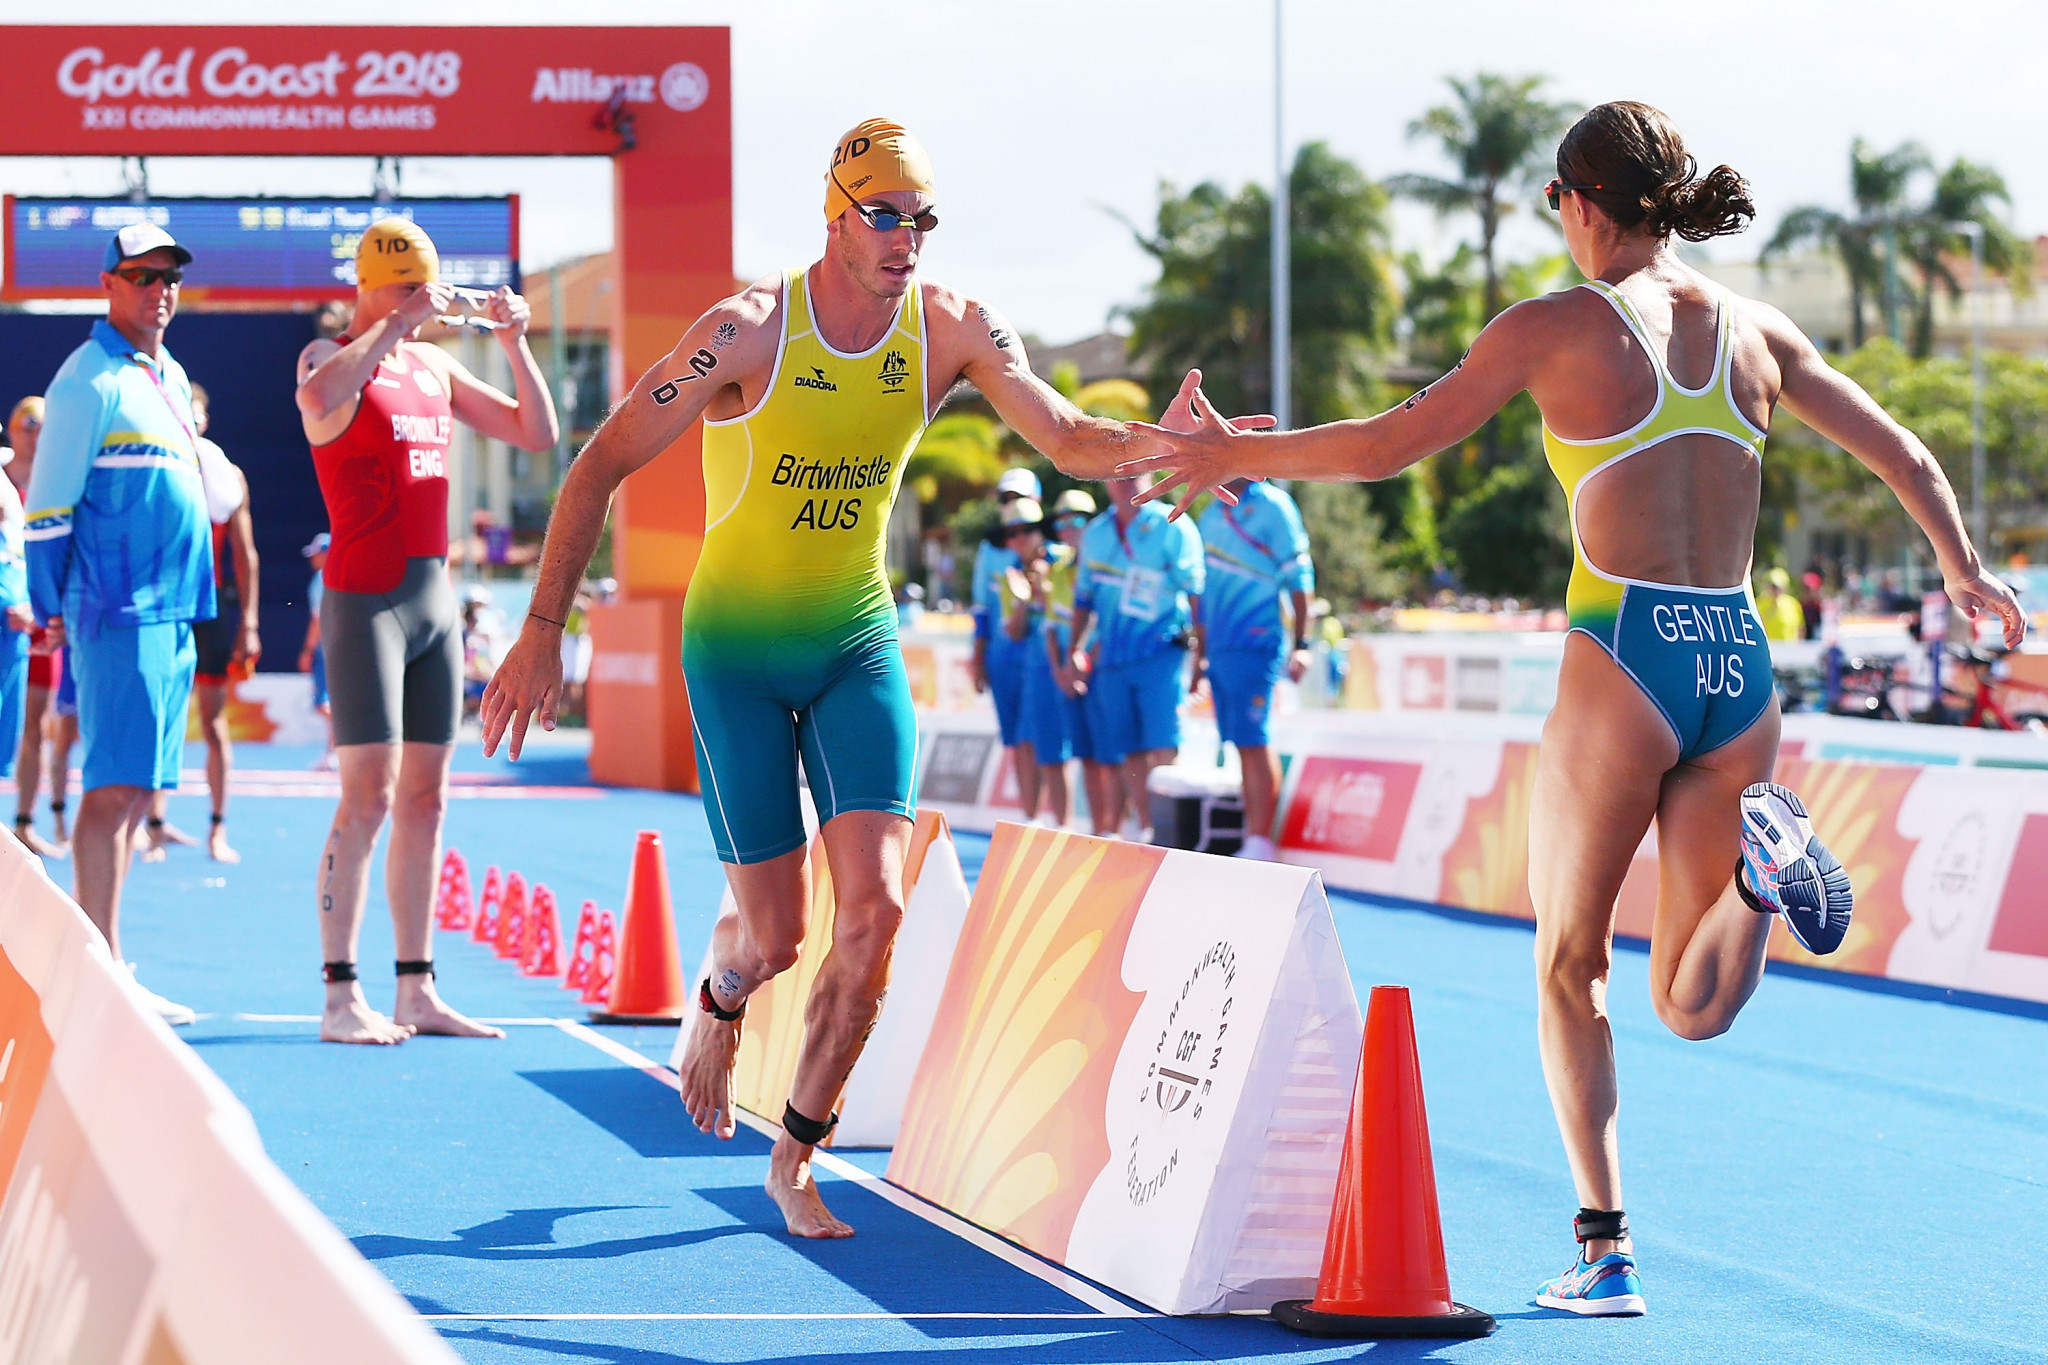 Mixed relay triathlon will debut at the Tokyo 2020 Olympics ©Getty Images